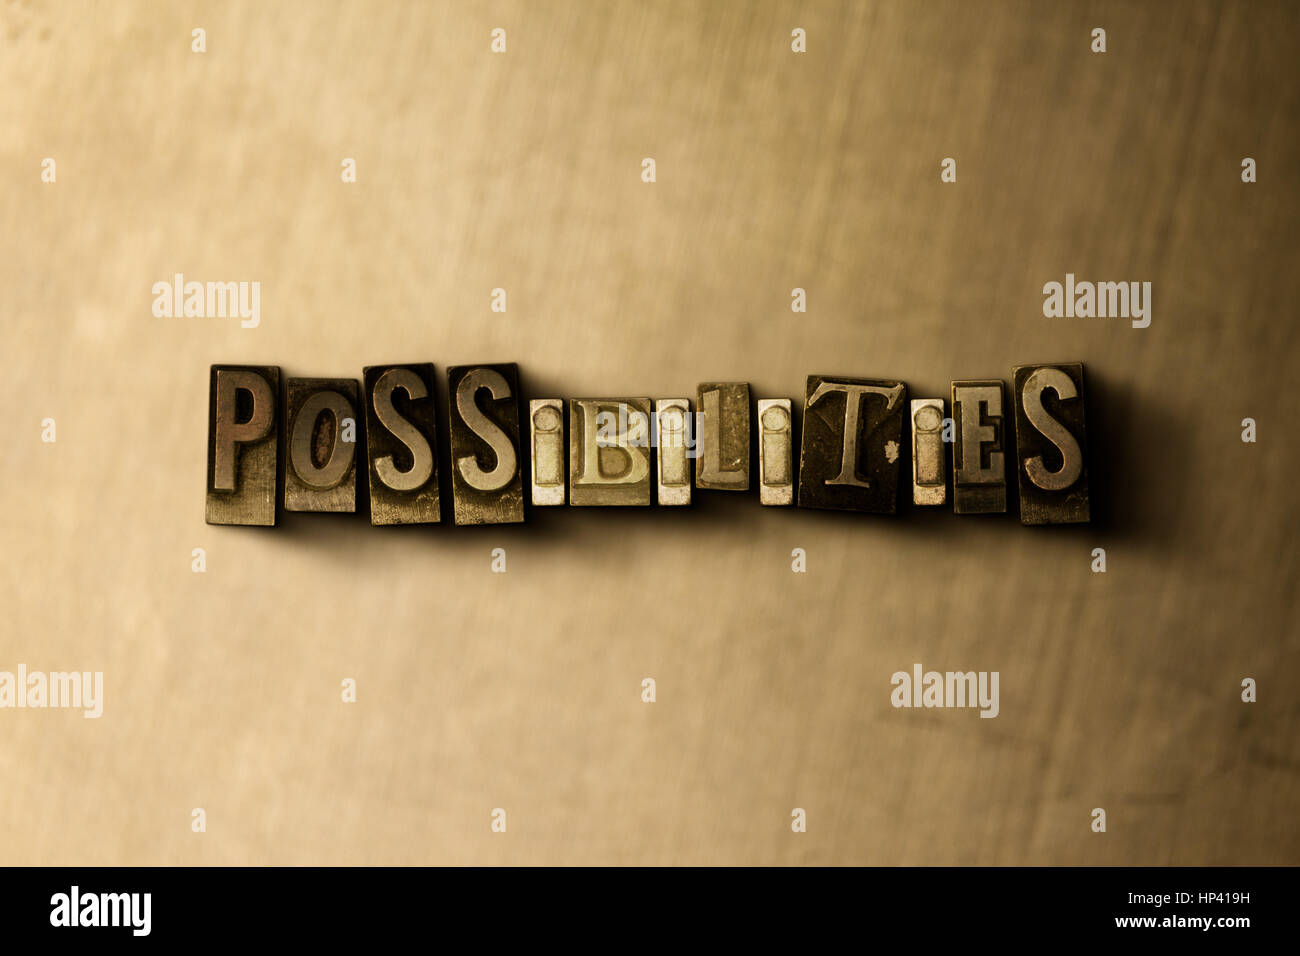 POSSIBILITIES - close-up of grungy vintage typeset word on metal backdrop. Royalty free stock illustration.  Can - Stock Image